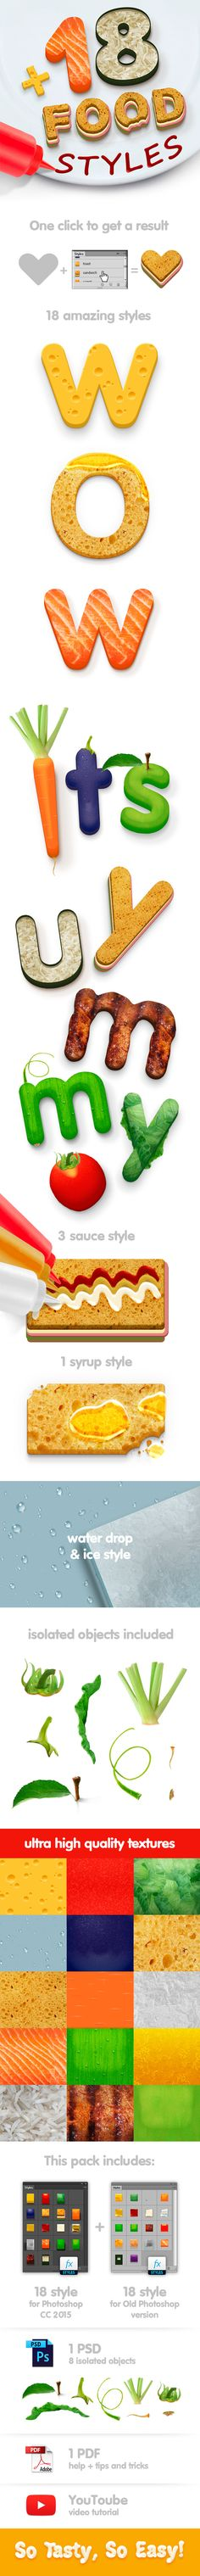 18 Food Styles by Lil_Bro Follow me 18 new styles of food for Photoshop CC 2015 and older versions. They are very easy to use �20just a single click! Packag